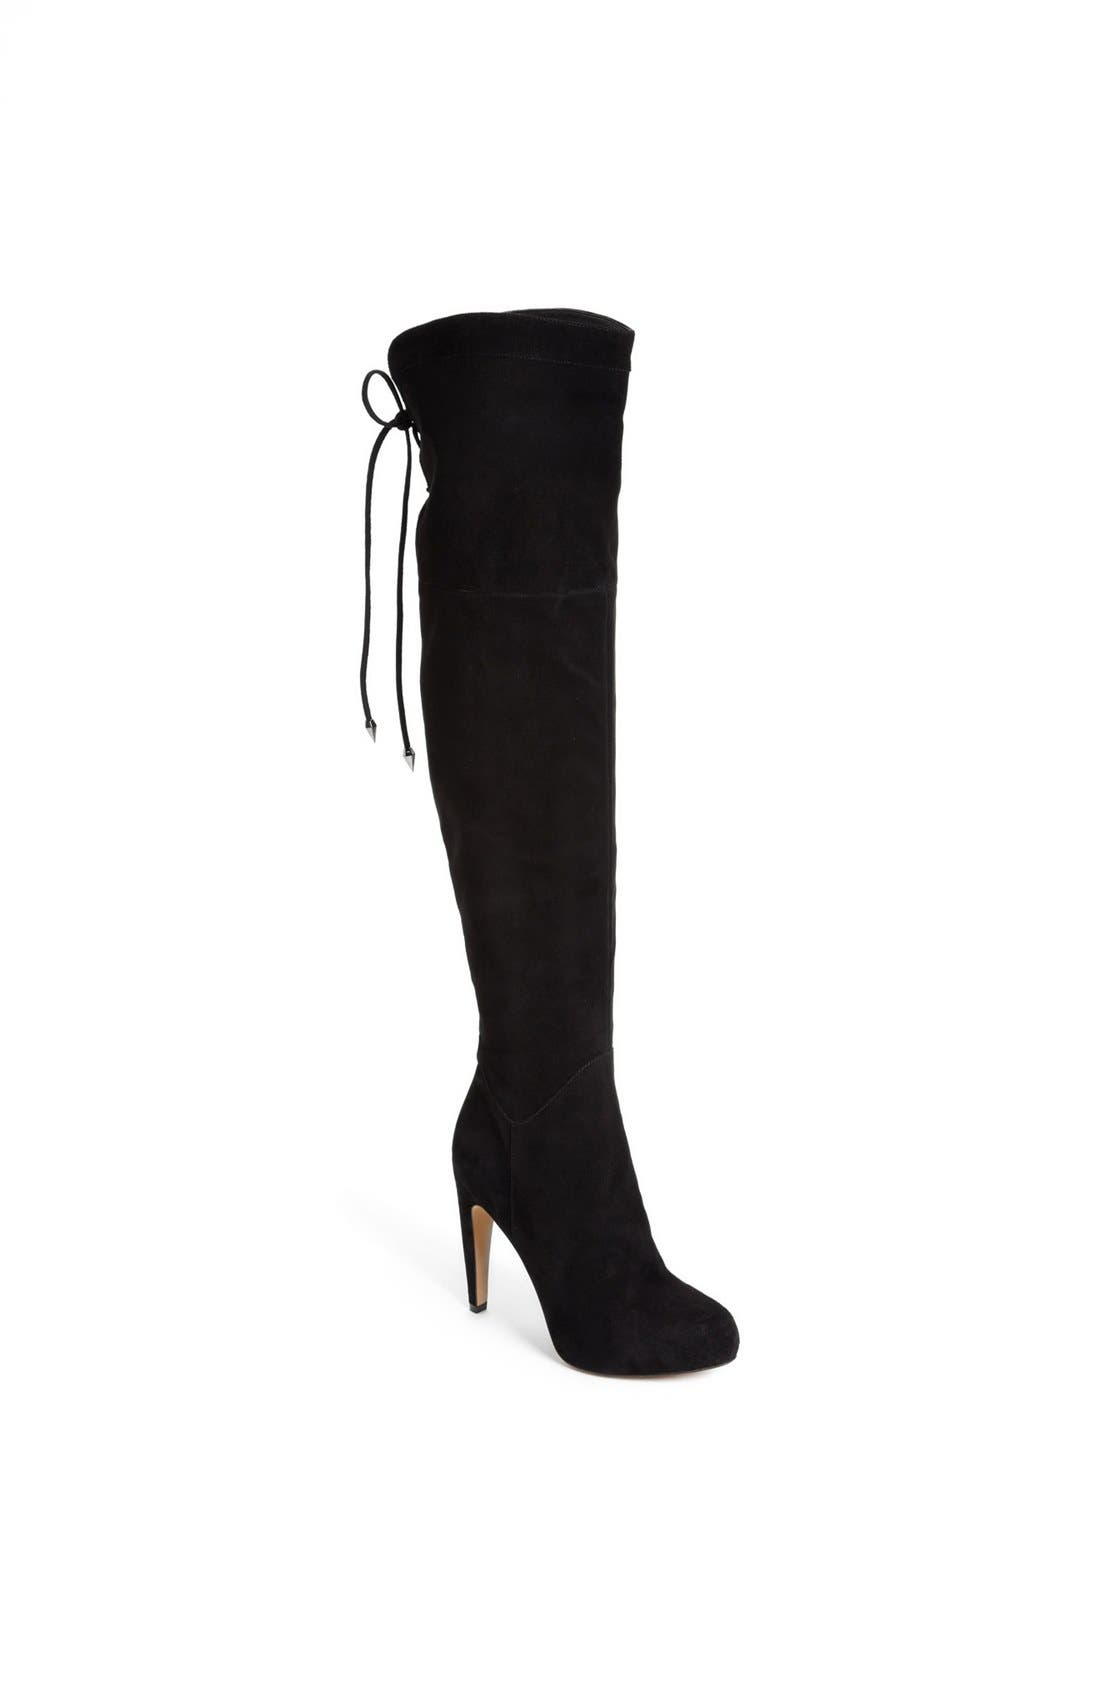 SAM EDELMAN 'Kayla' Over the Knee Boot, Main, color, 001